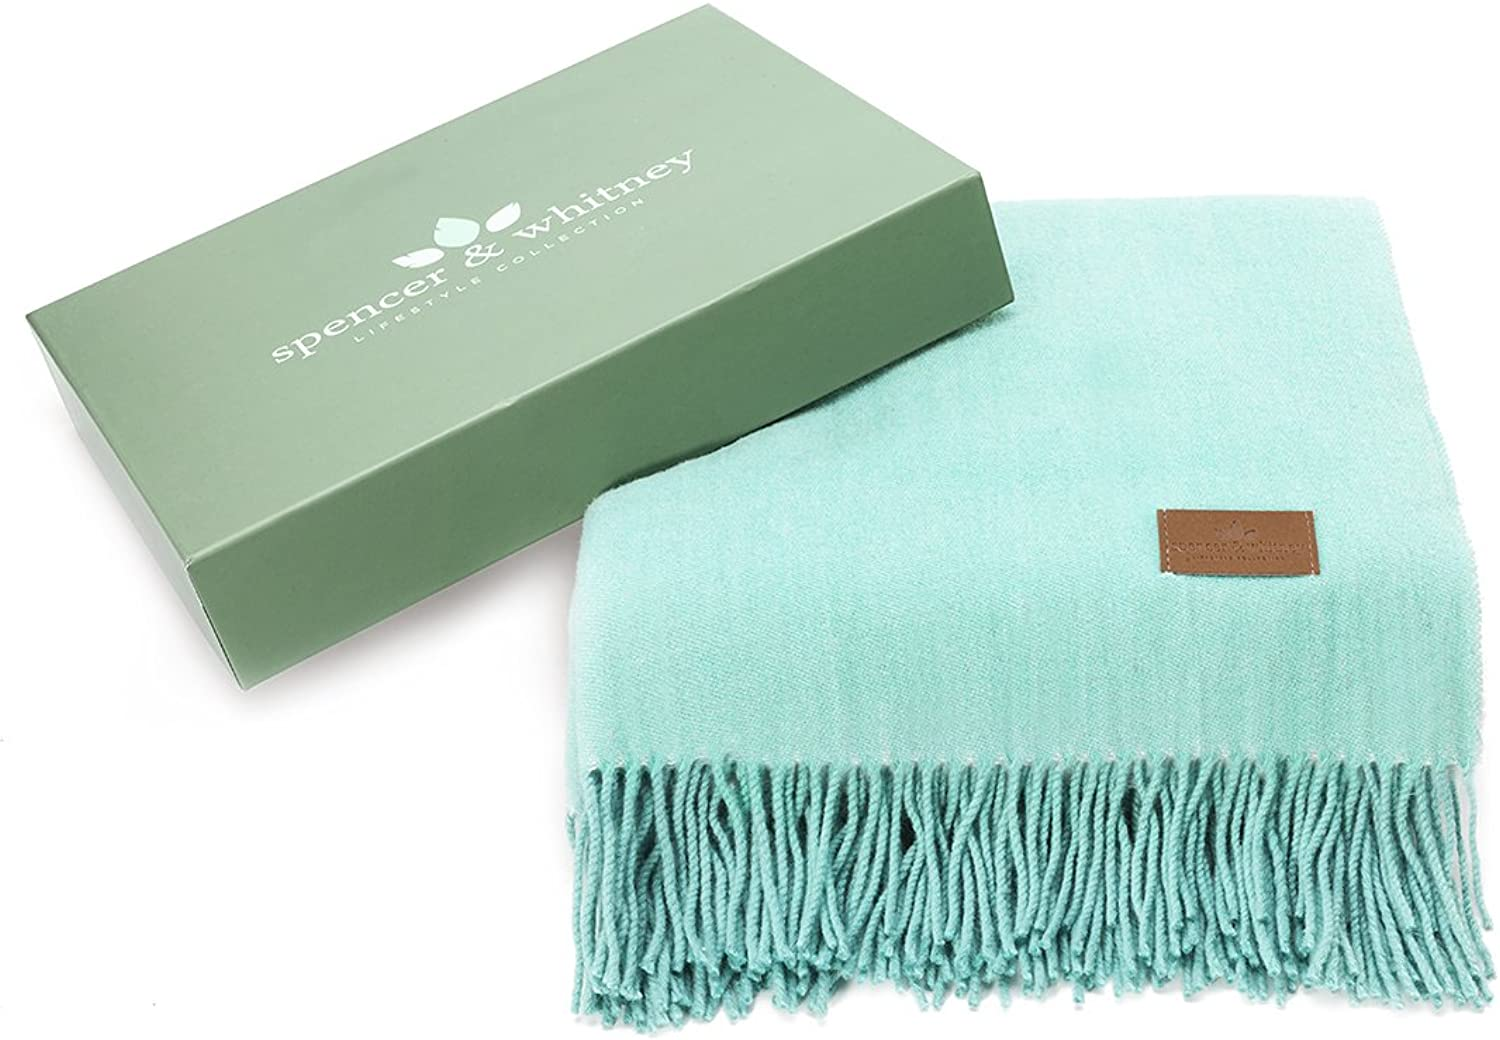 Spencer&whitney Bed Throw Blanket Throws Wool Throw 70% Wool 30% Viscose Throws Twin Lightweight Throw Blanket Wool Throws Throw Blanket (Light bluee)